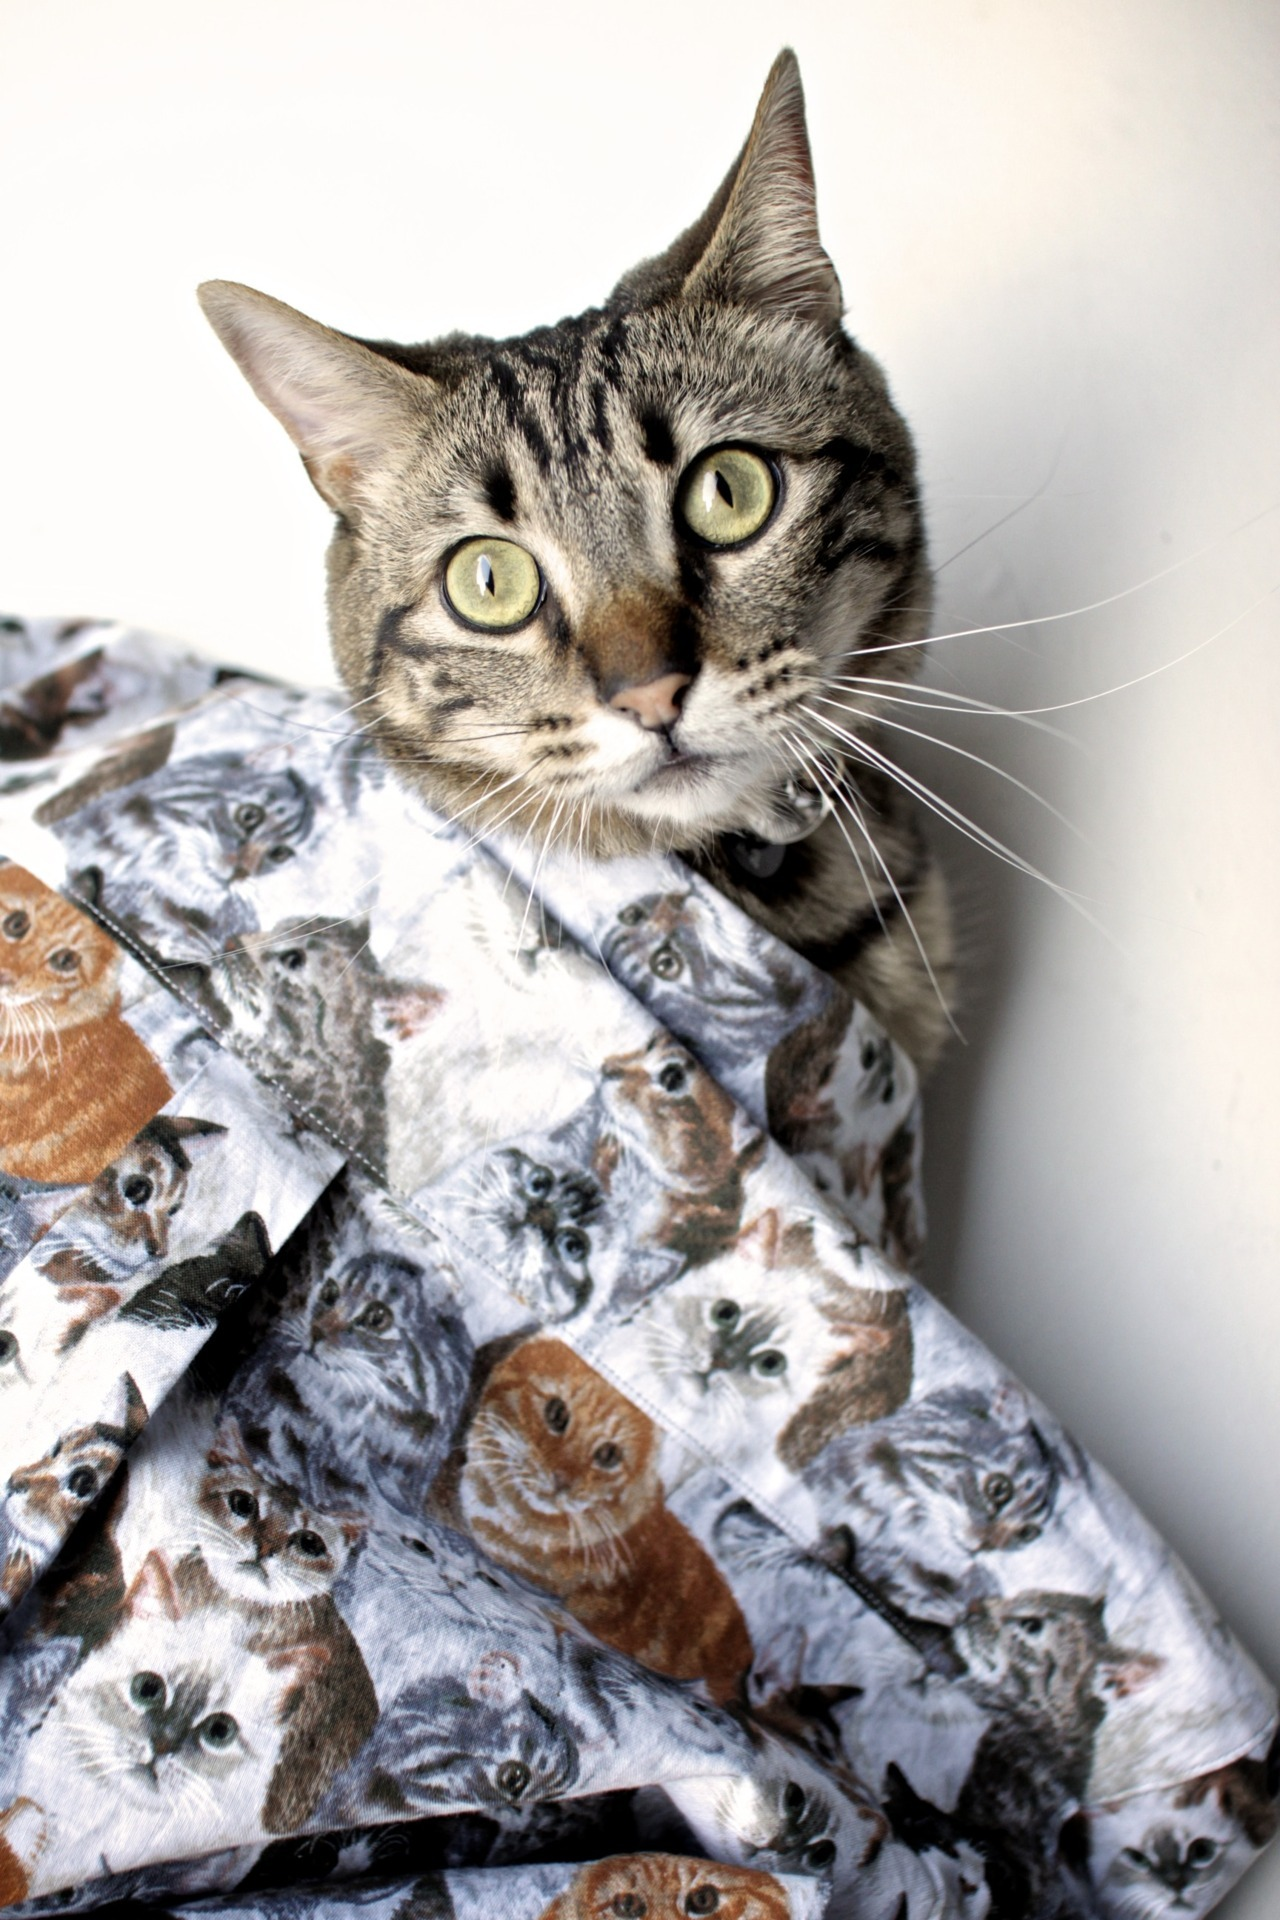 ripndiplivefeed:  Restock of the Nermal button downs and the new ripndip summer line drops June 1st 12:01am. www.ripndipclothing.com